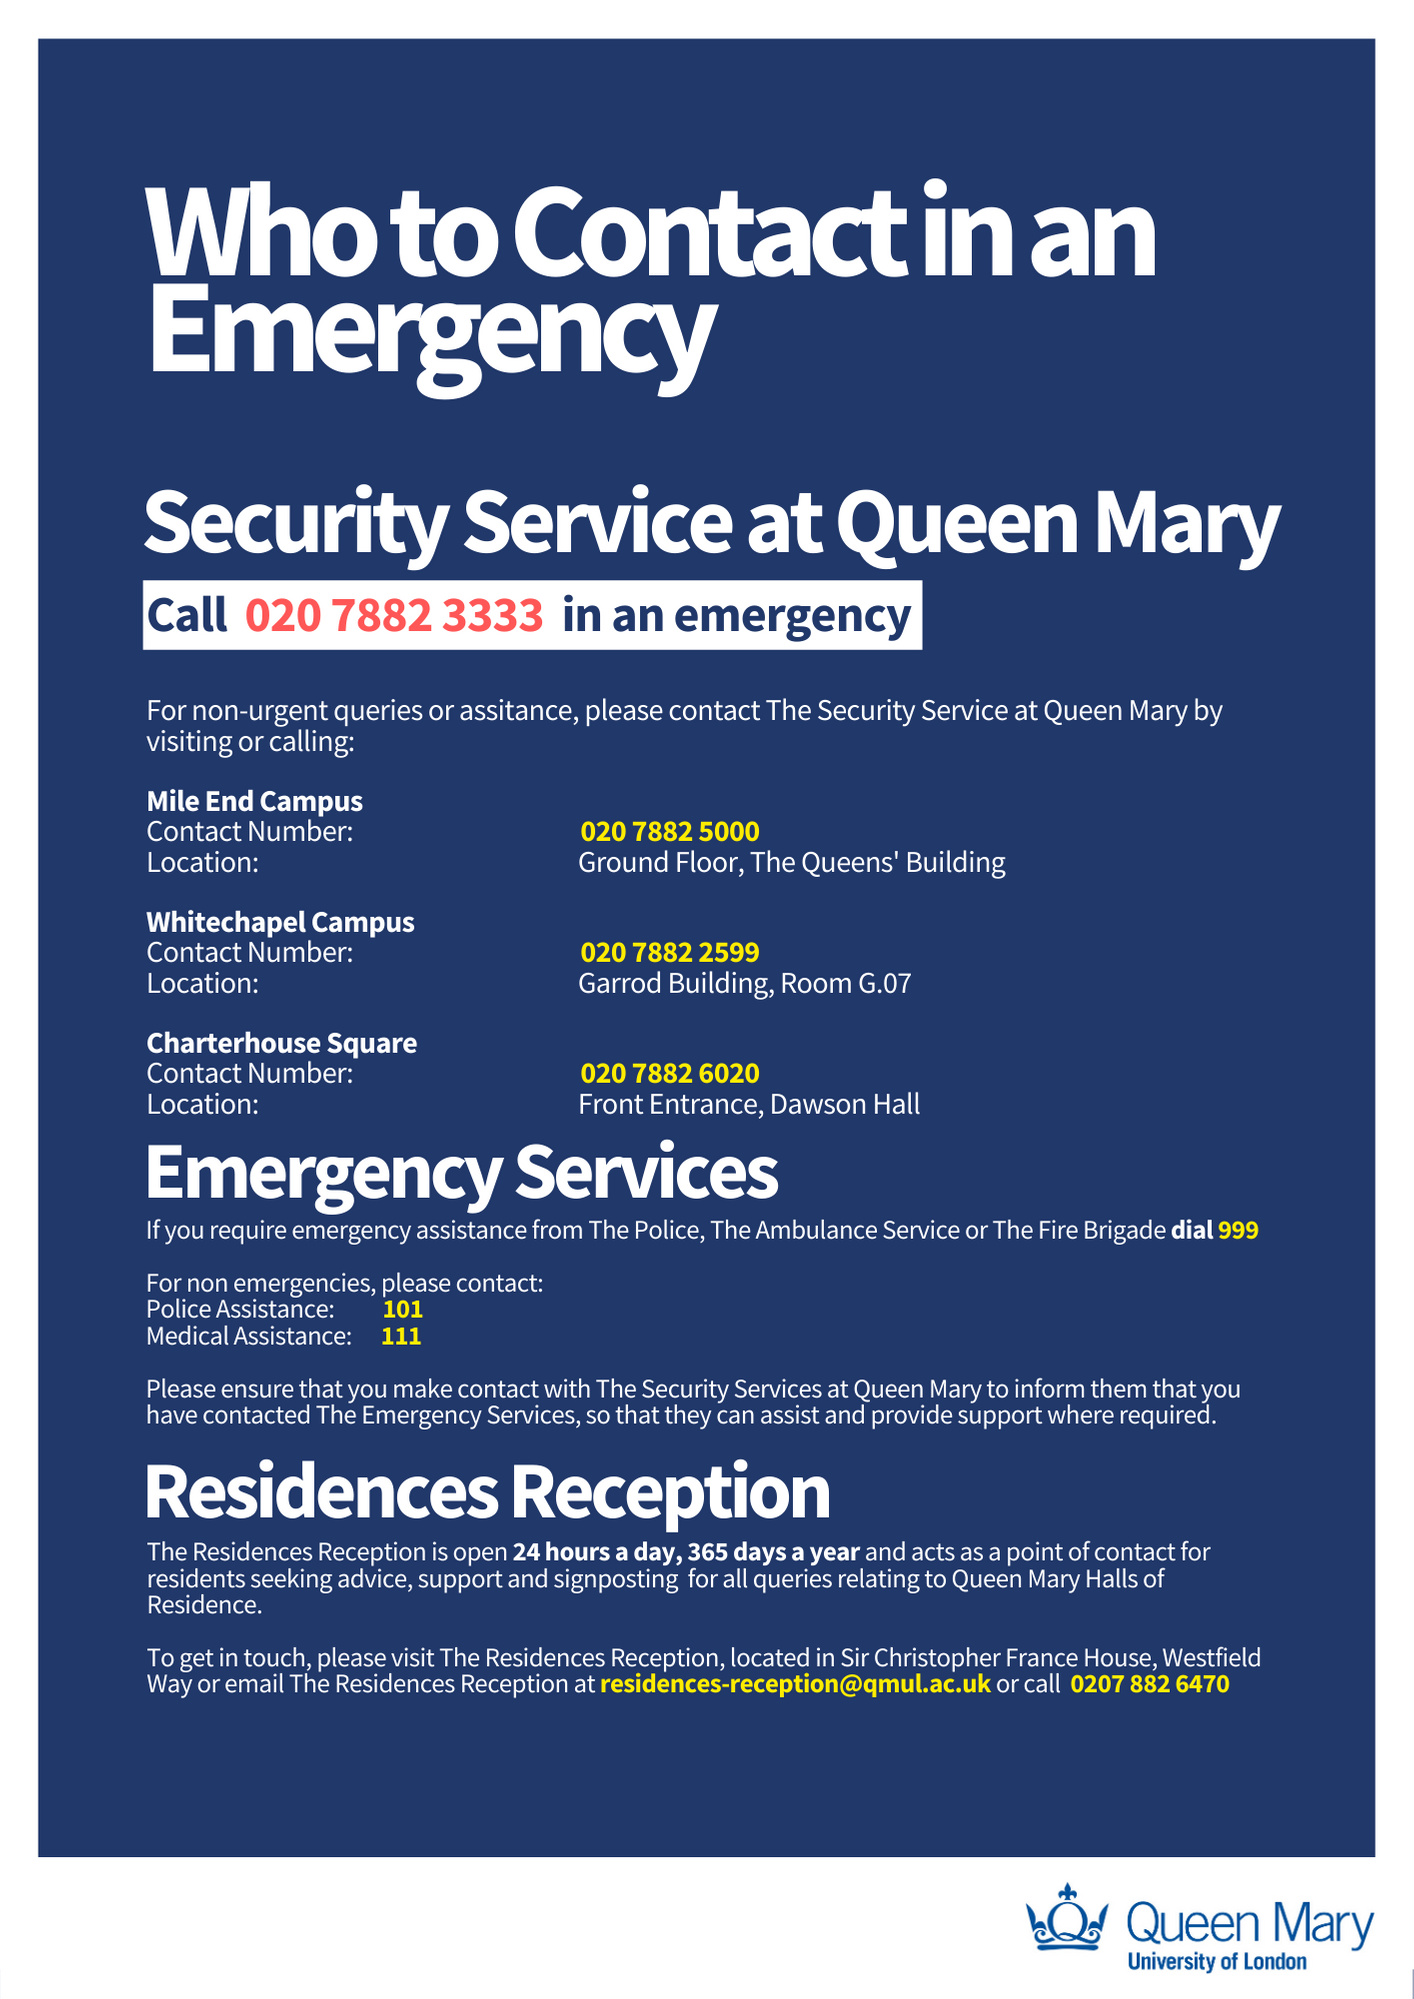 Contact details for emergencies